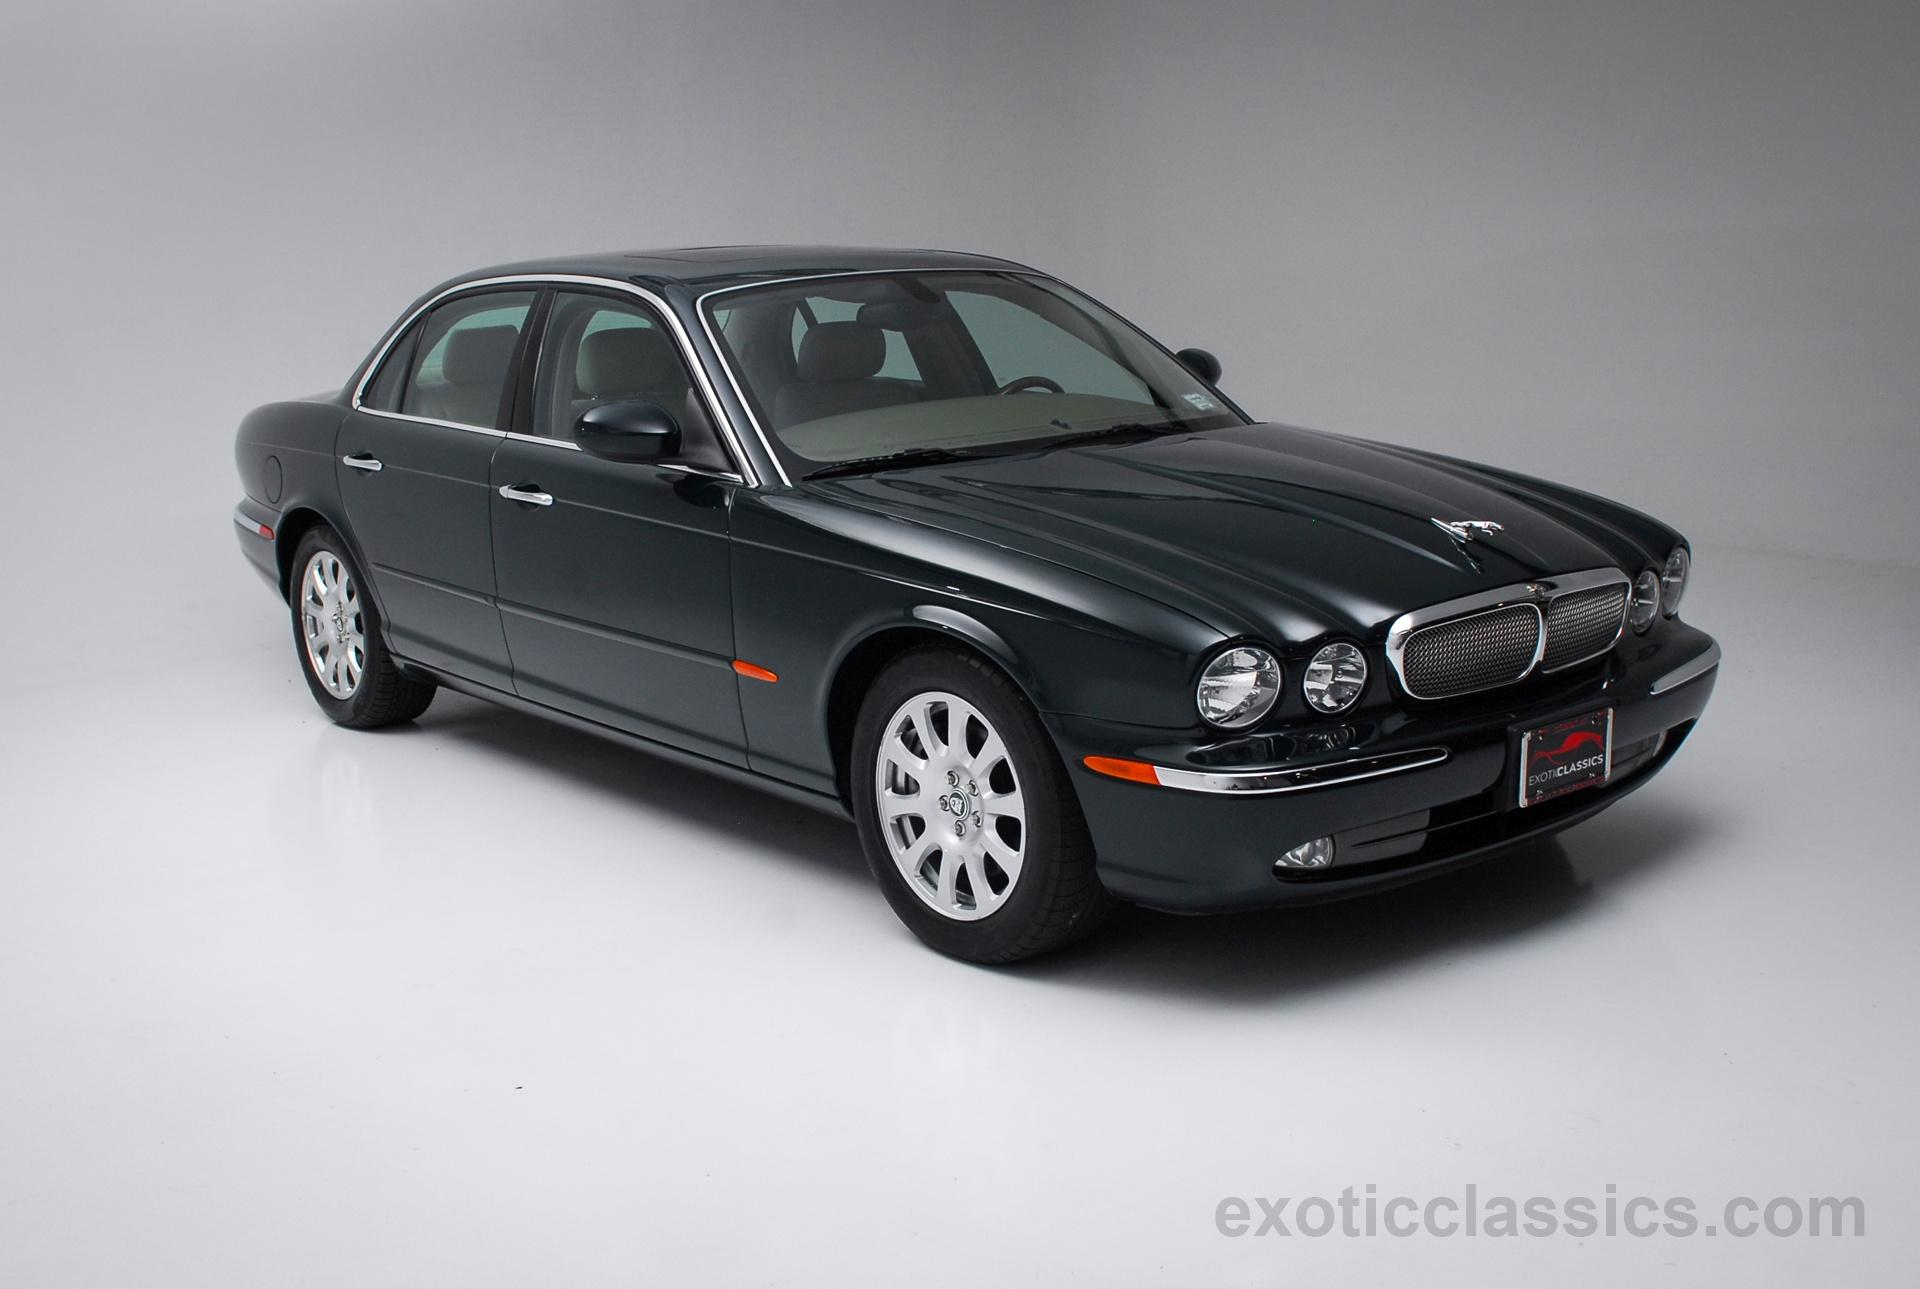 2004 Jaguar Xj Series Xj8 Champion Motors International